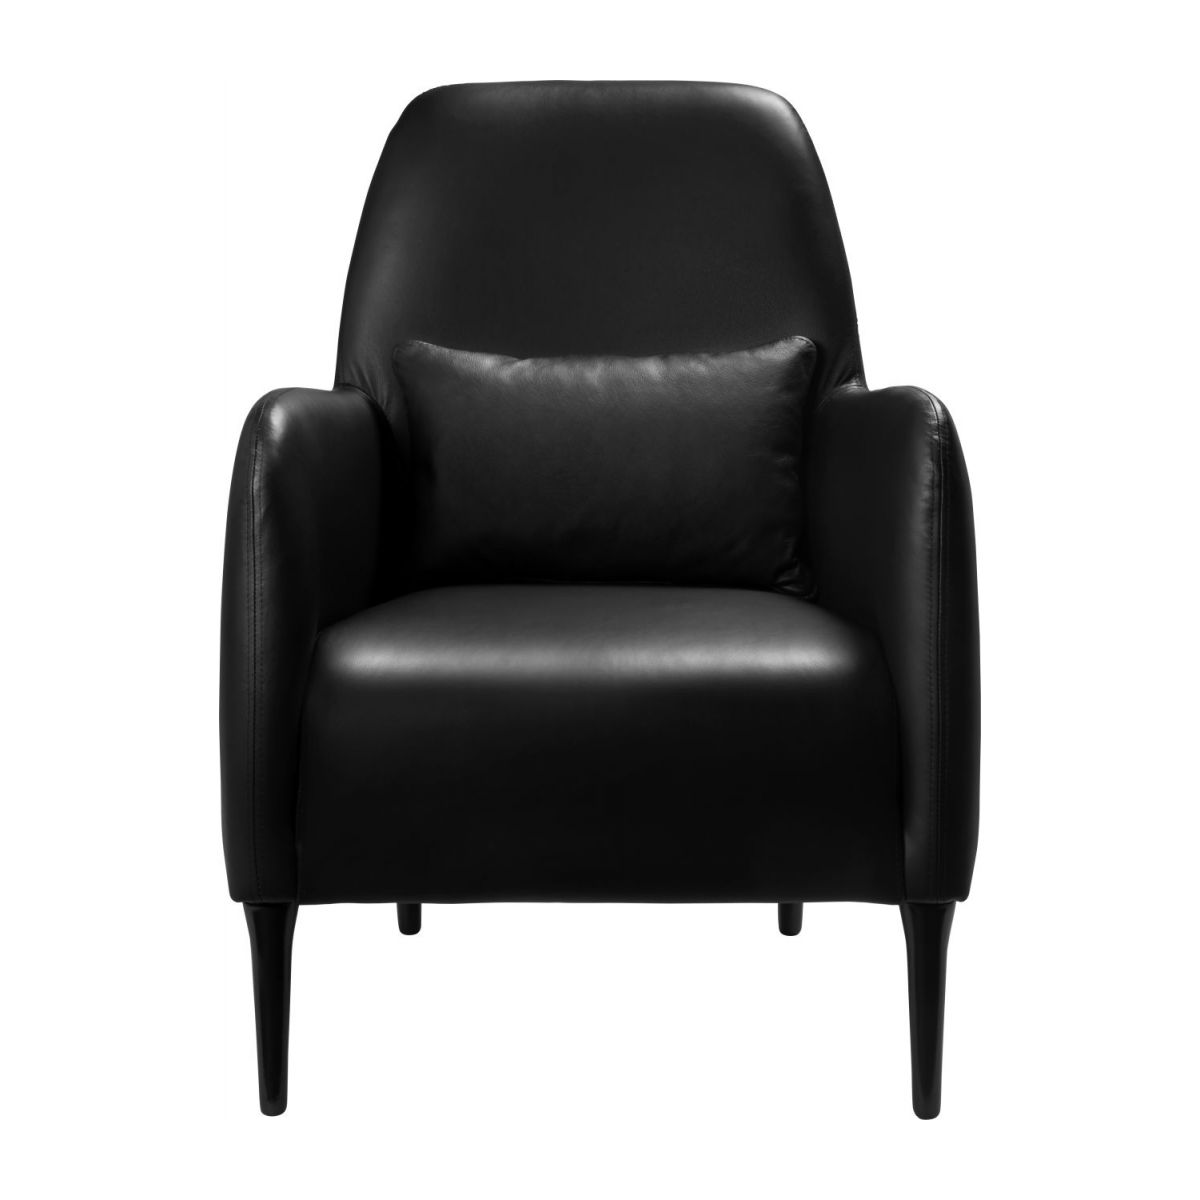 Leather armchair n°3